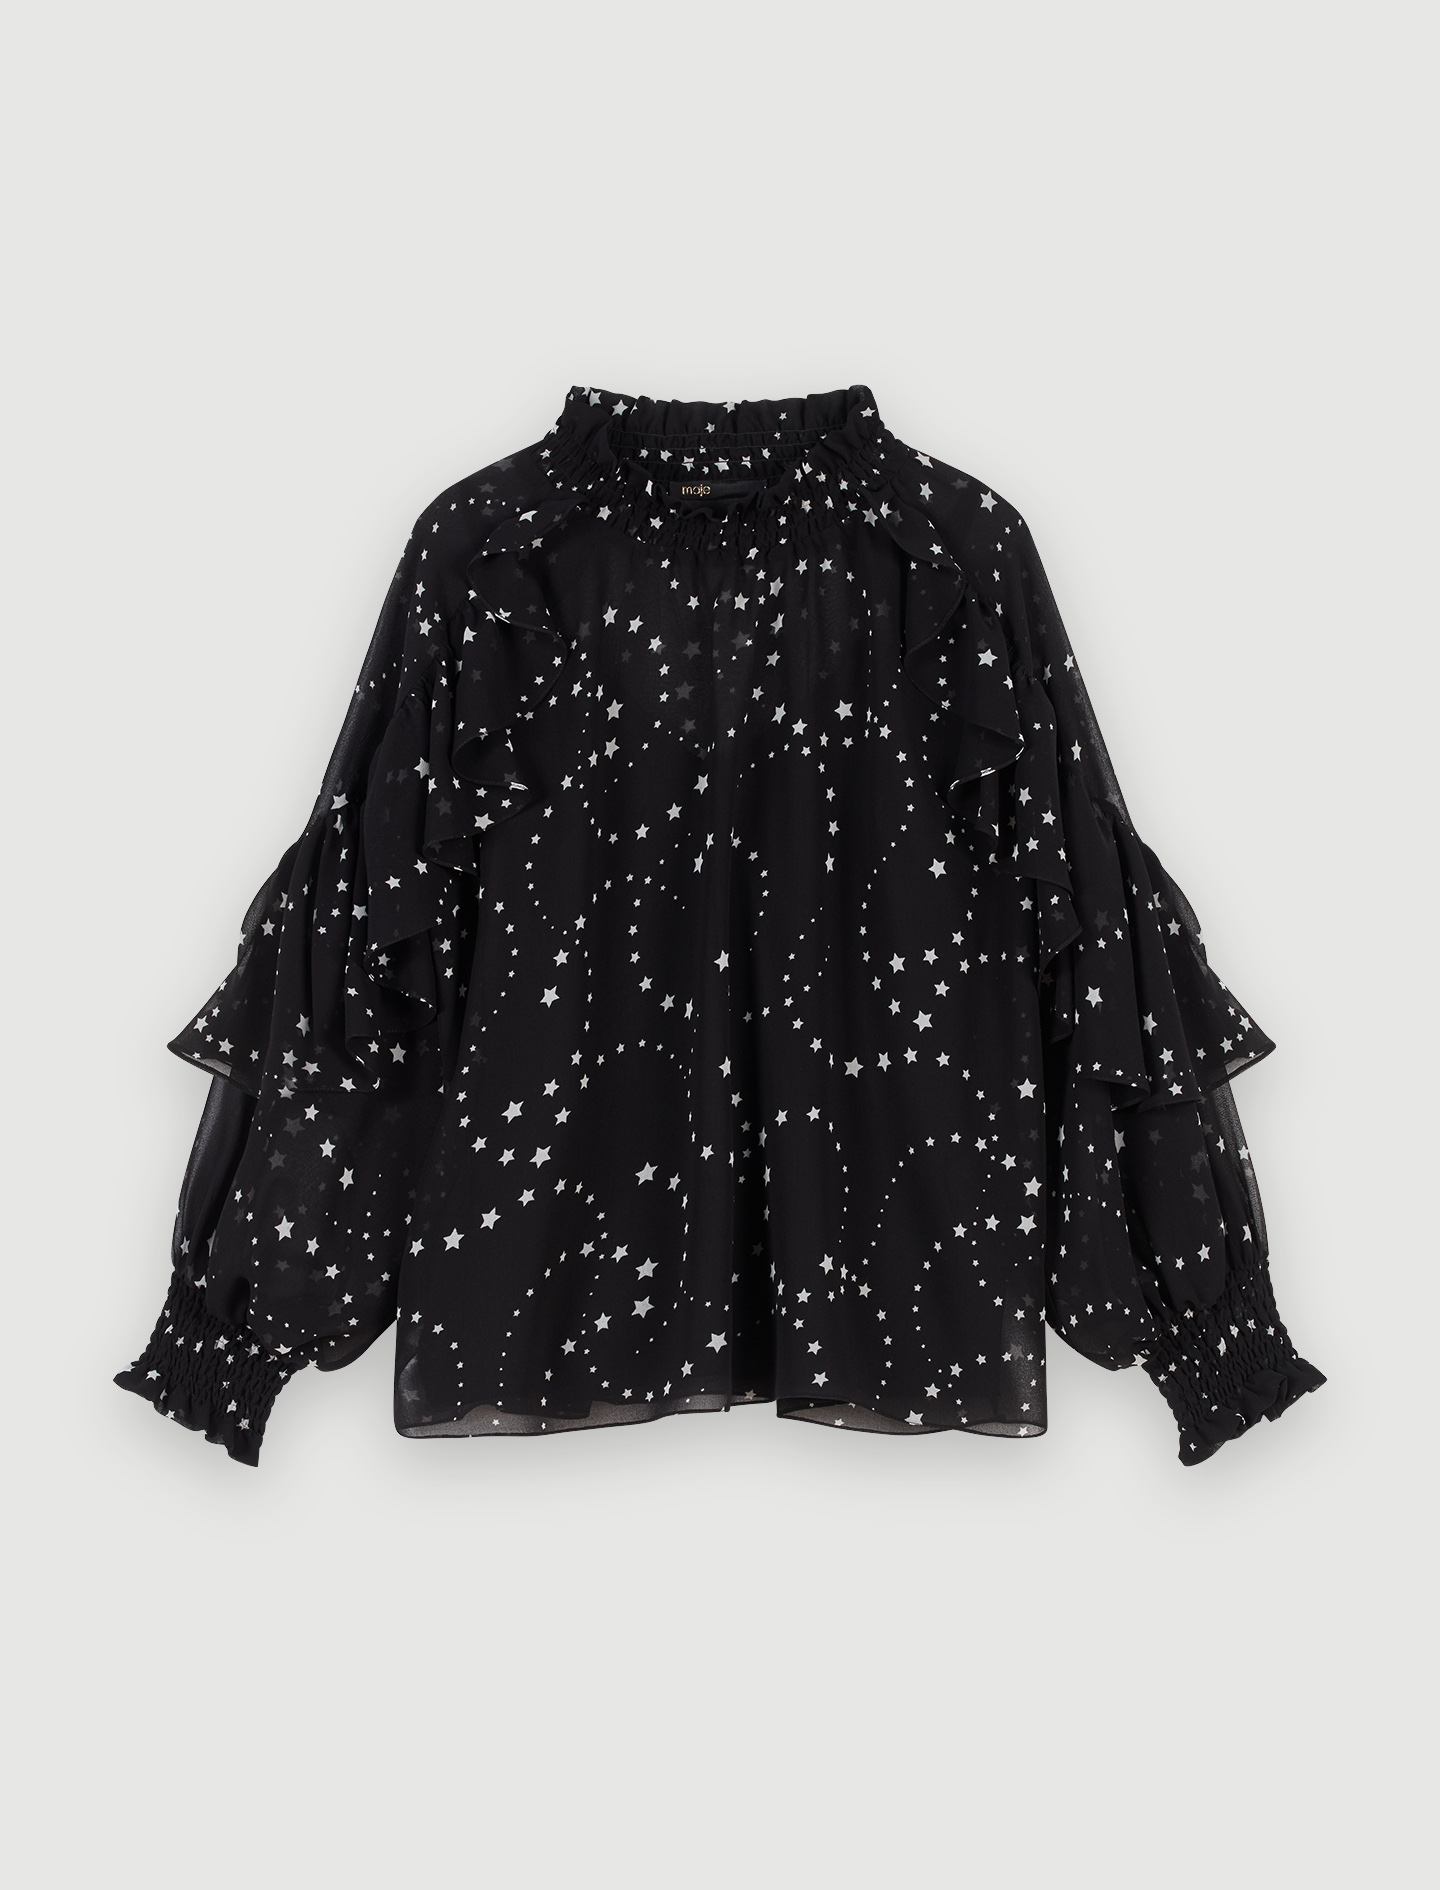 Printed-muslin ruffled top - Tops & Shirts - MAJE